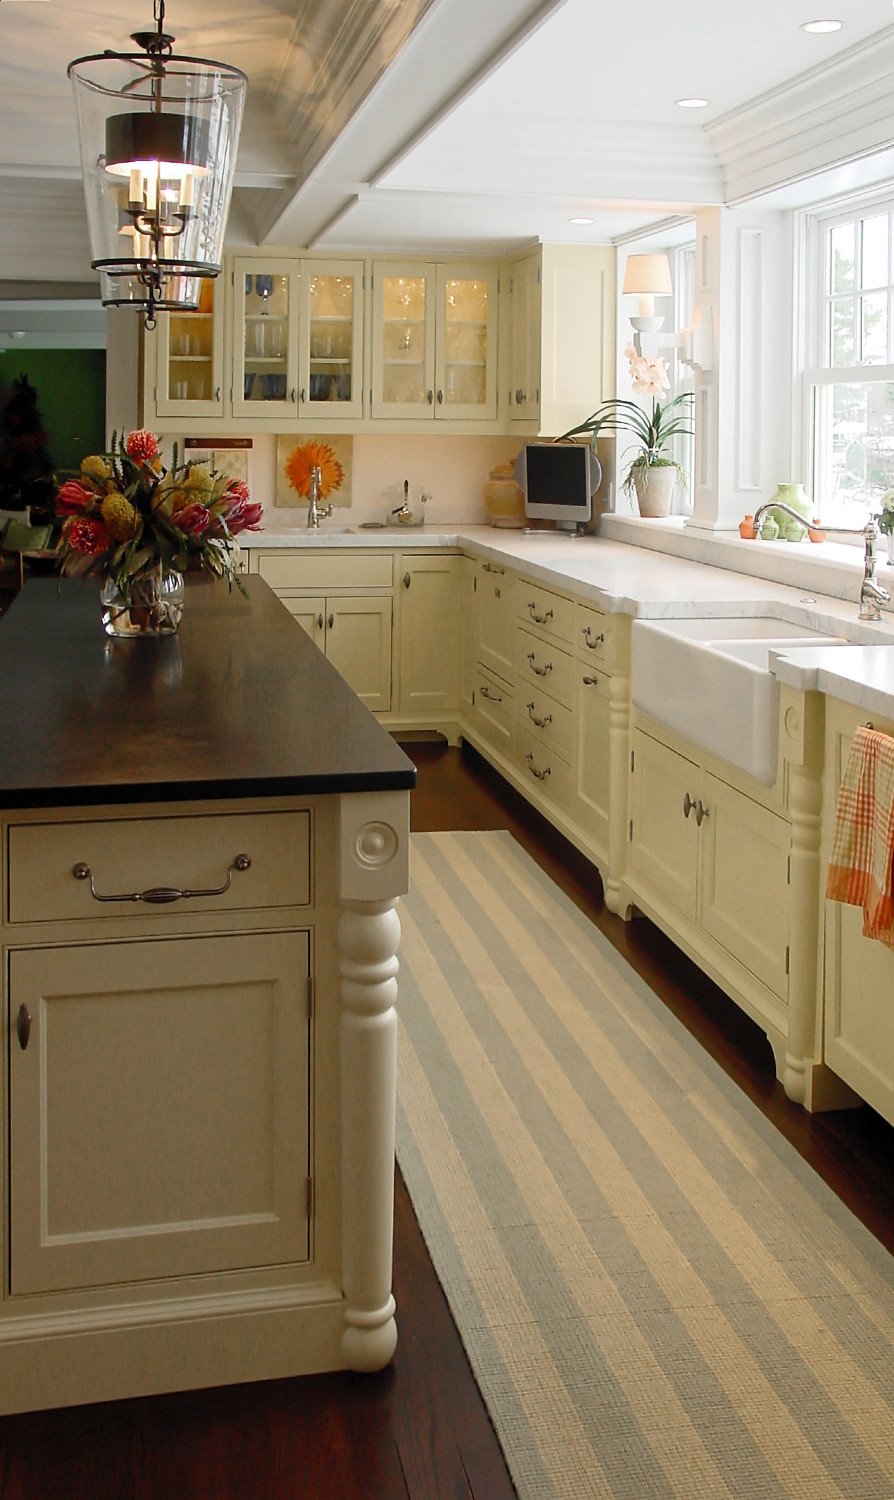 kitchen_5_1500.jpg